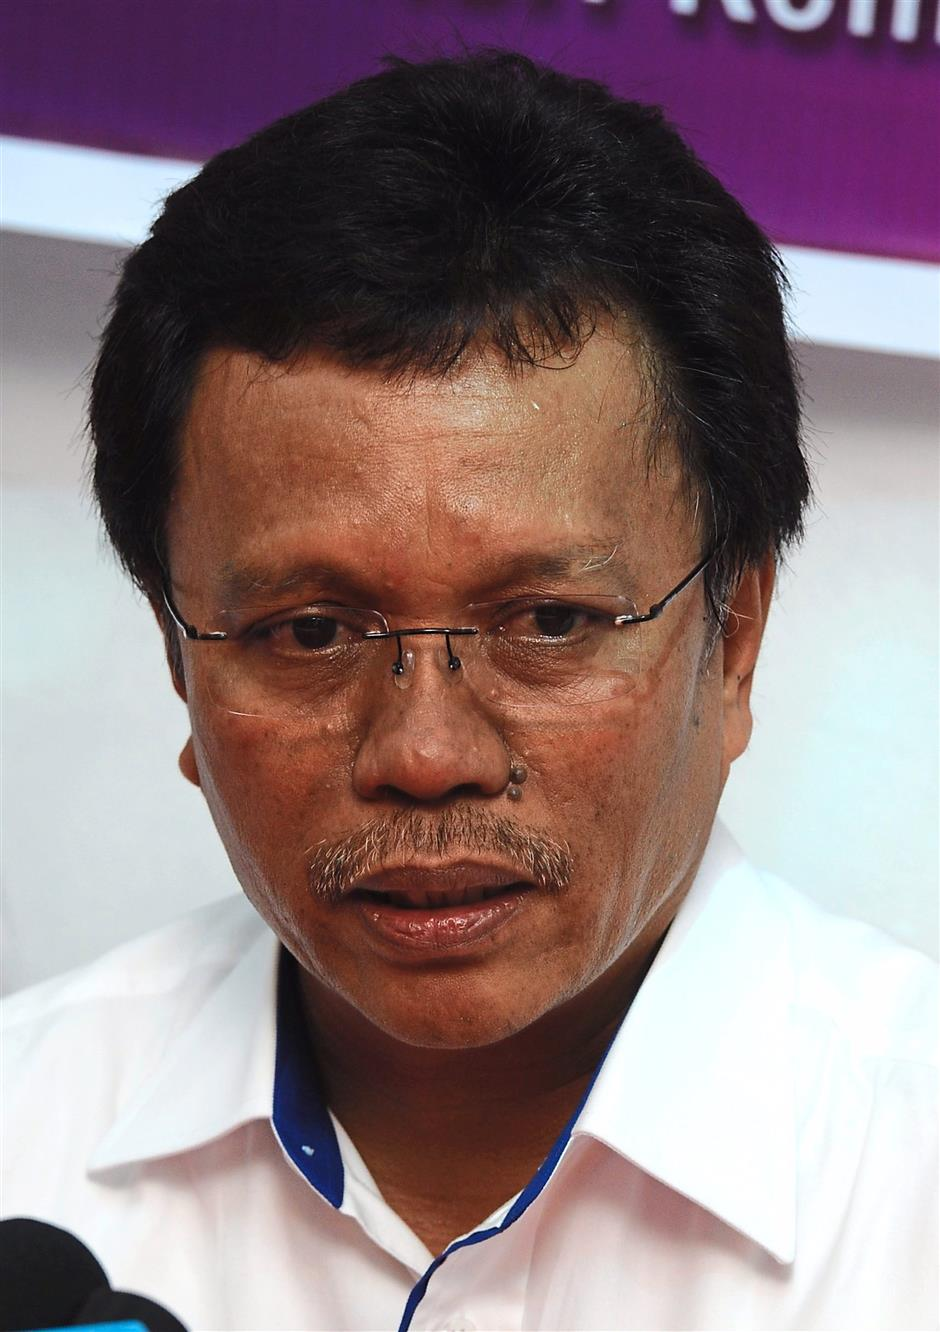 """Shafie: """"Why should I quit for raising issues?"""""""